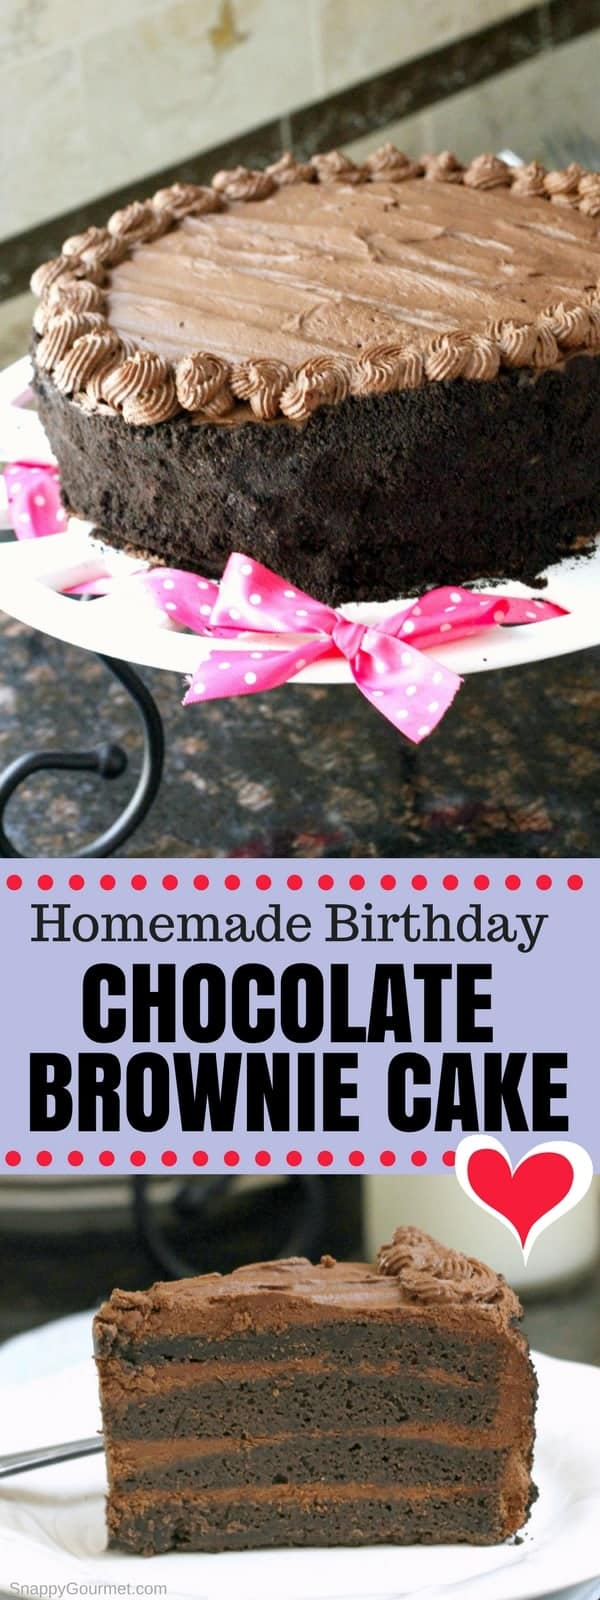 Homemade Birthday Chocolate Brownie Cake Recipe, an easy super moist from scratch layered chocolate brownie cake perfect for birthdays and special occasions!